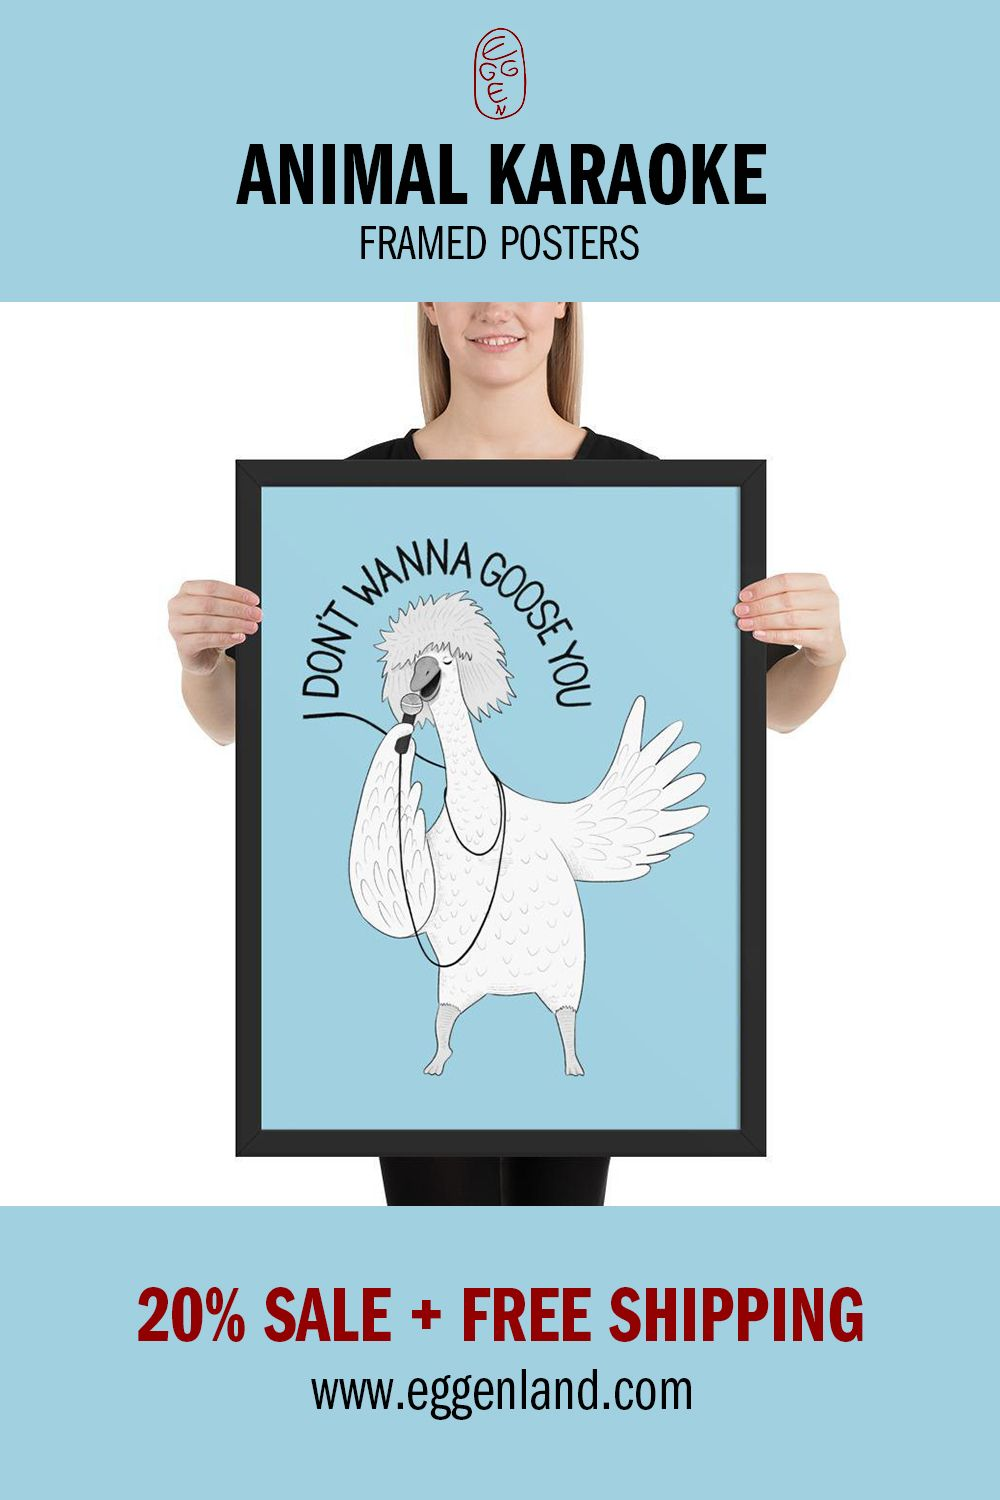 This illustration on poster is a part of Animal Karaoke series. Find more at eggenland.com | #illustrations #drawings #goose  #animals  #funnyanimals #cartoonanimals #cartoon #funnygoose #singinggoose #song #karaoke #music #lyrics #tinaturner #posters #posterforsale #yellow #microphone #drawingeggen #singing #xmas #christmas #gift #giftideas home decor, wall art